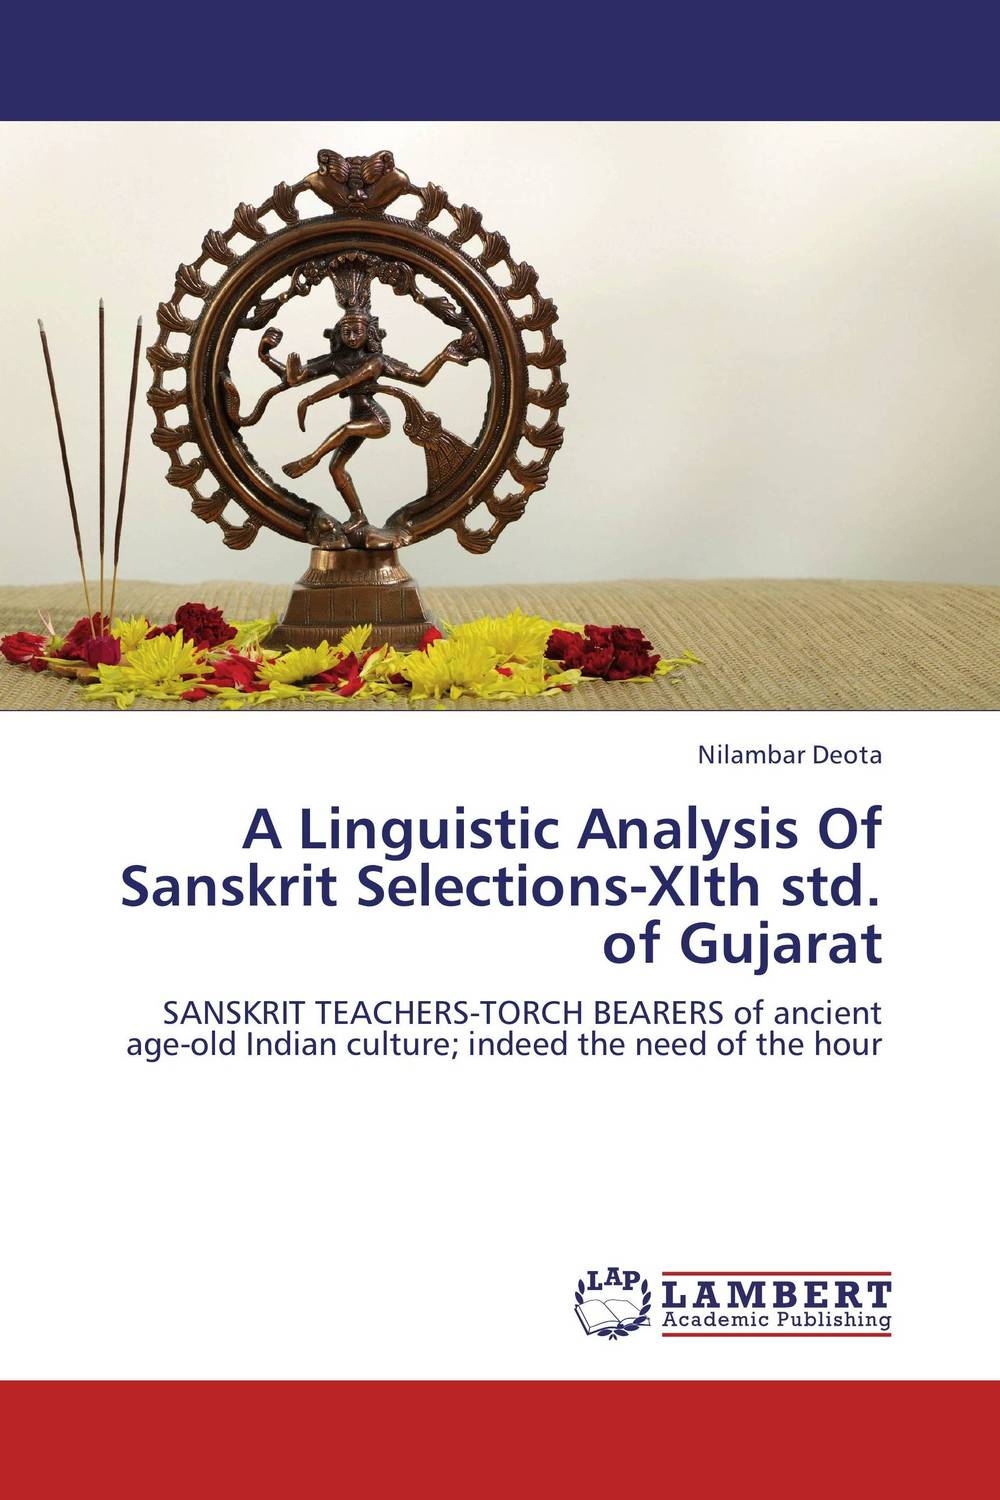 A Linguistic Analysis Of Sanskrit Selections-XIth std. of Gujarat cultural and linguistic hybridity in postcolonial text